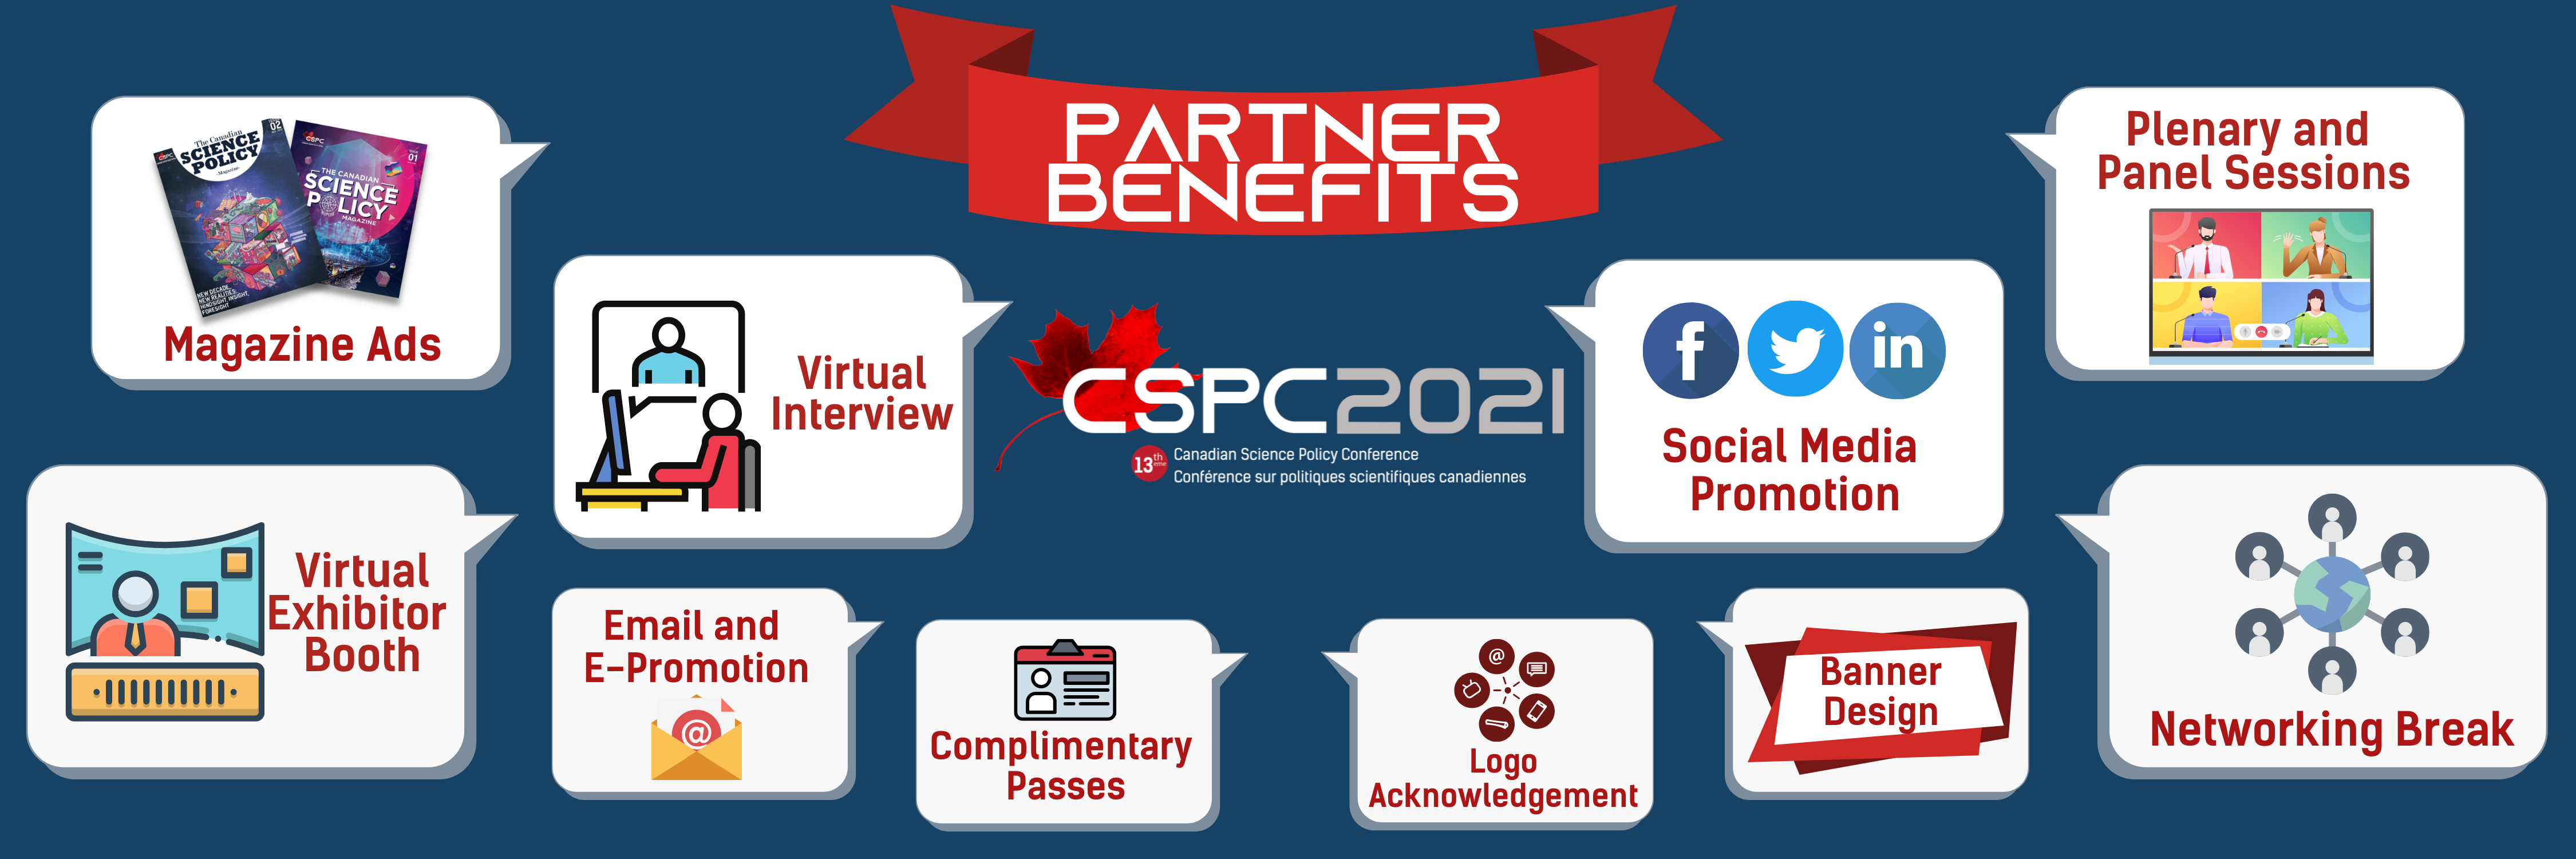 a banner showing a graphic fo each of the CSPC 2021 Partner benefits